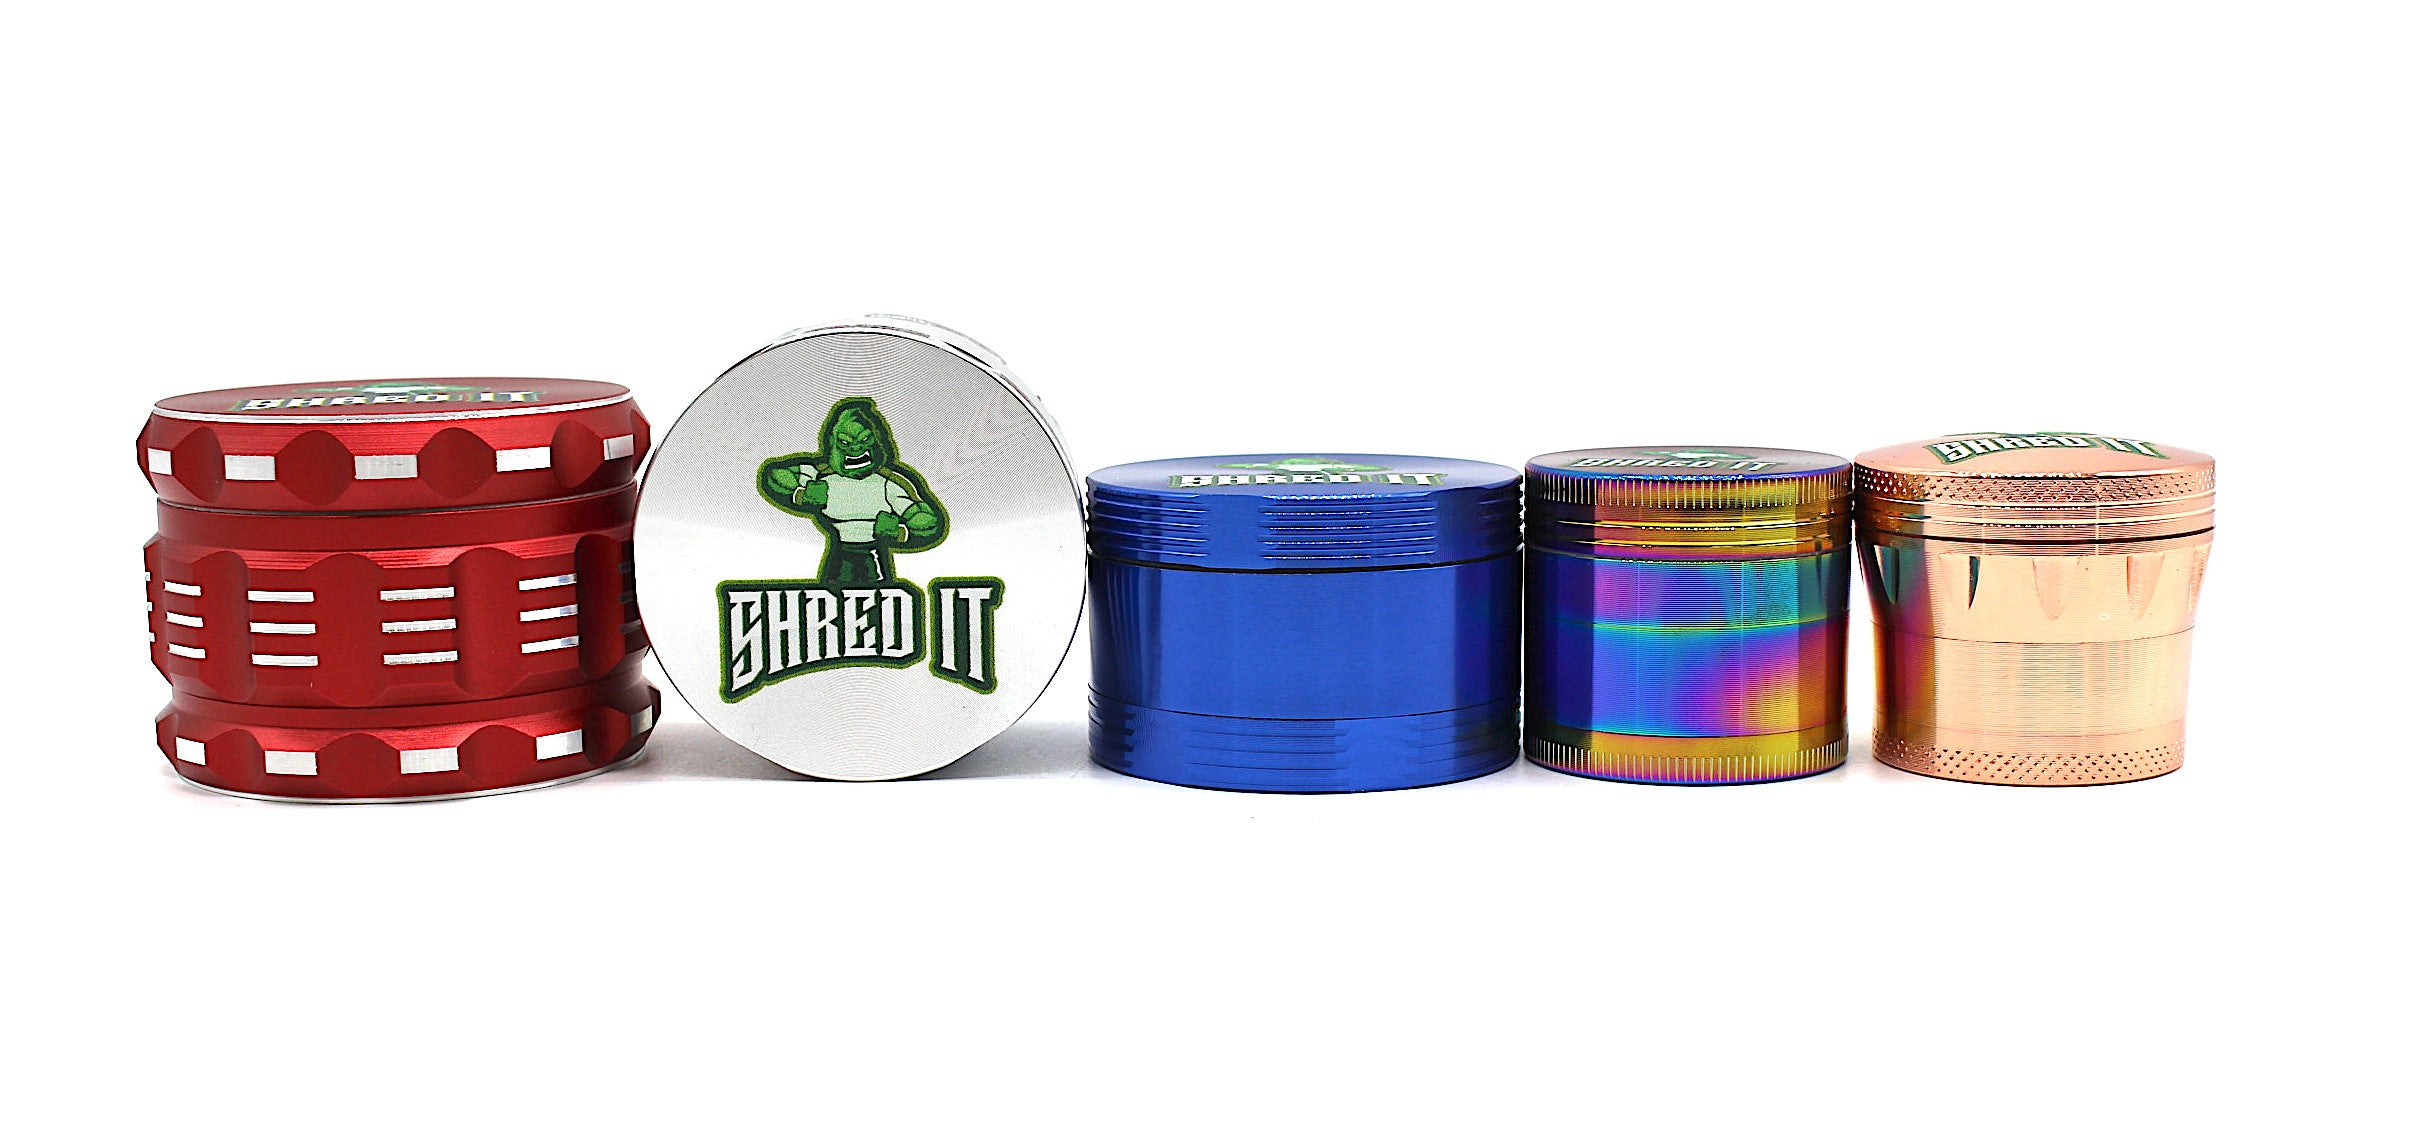 SHRED IT - 4 Piece Metal Grinder ( Different Sizes and Different Colors )